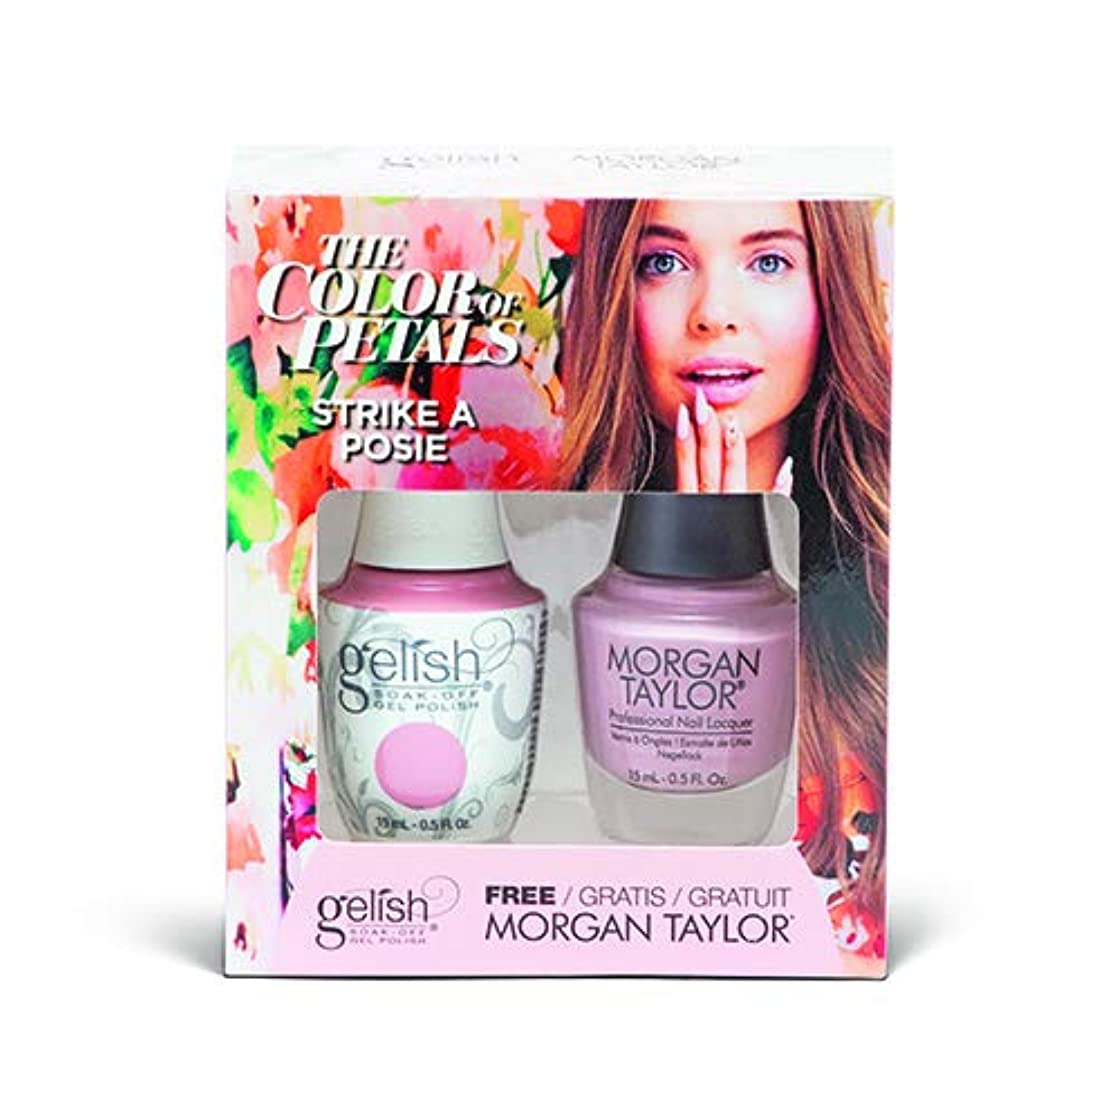 特性半島完璧なHarmony Gelish - Two Of A Kind - The Color Of Petals - Strike A Posie - 15 mL / 0.5 Oz